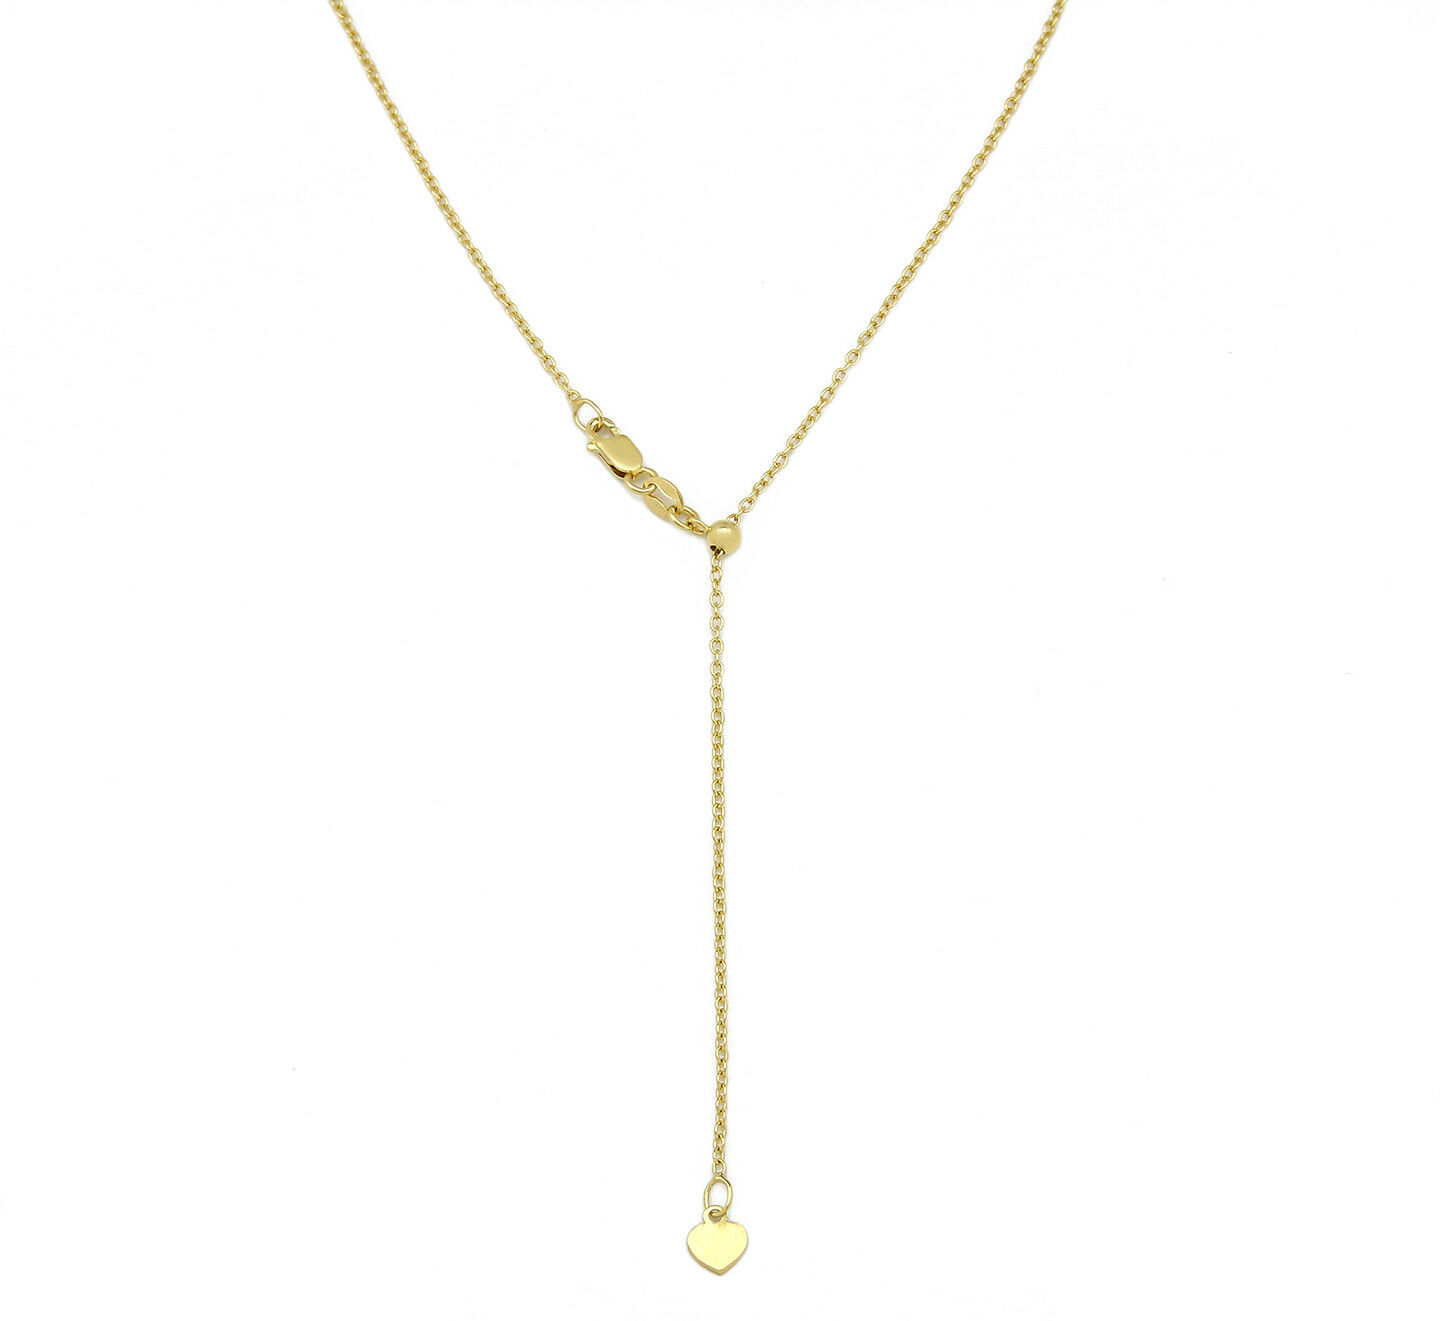 Easyjust Adjustable 12 - 22 in Long 14k SOLID gold 1.45 mm Rolo Chain